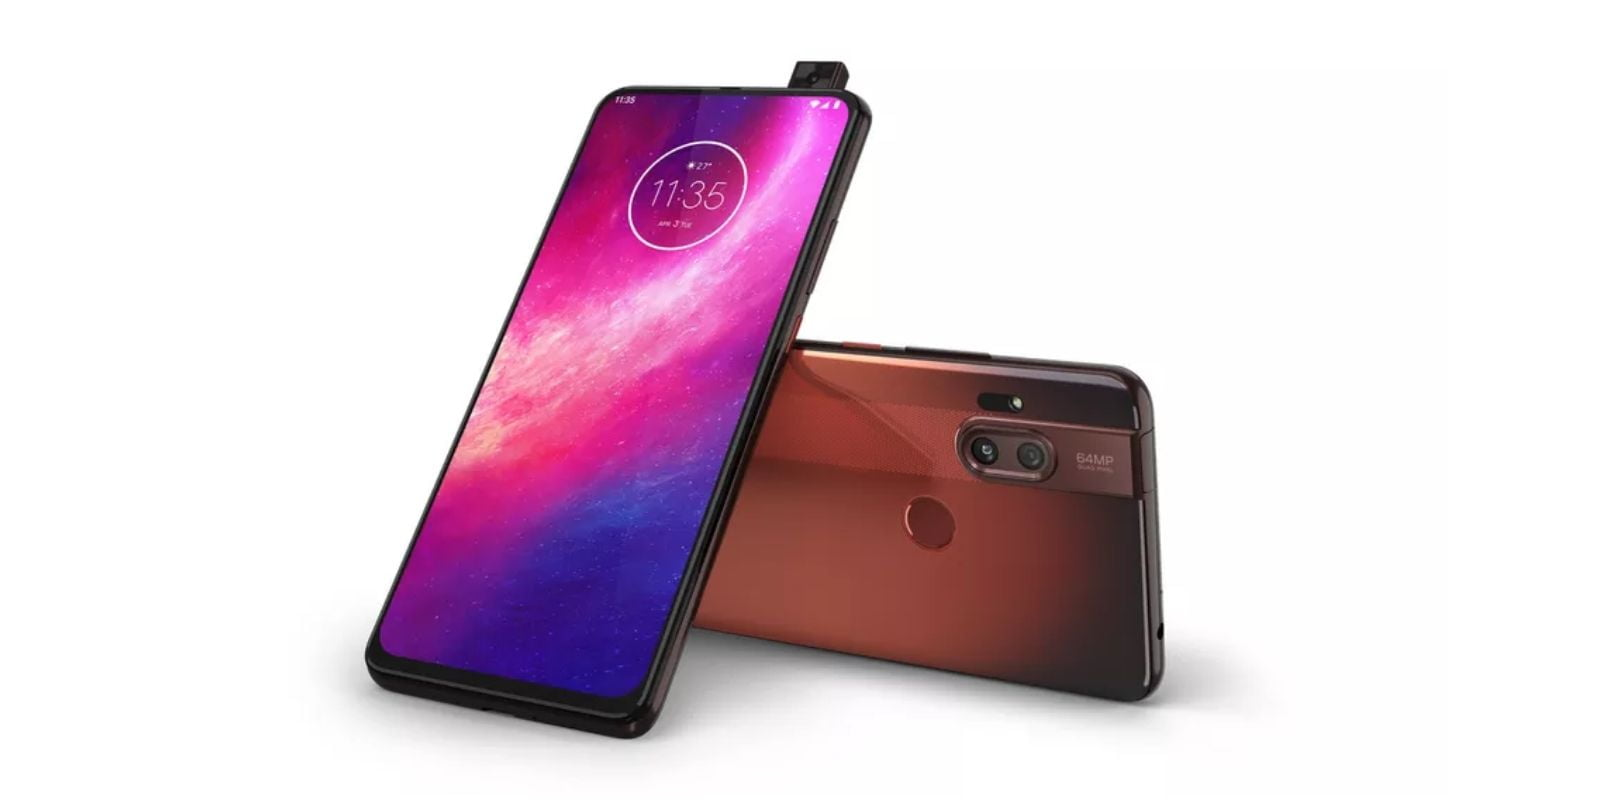 Motorola One Hyper design